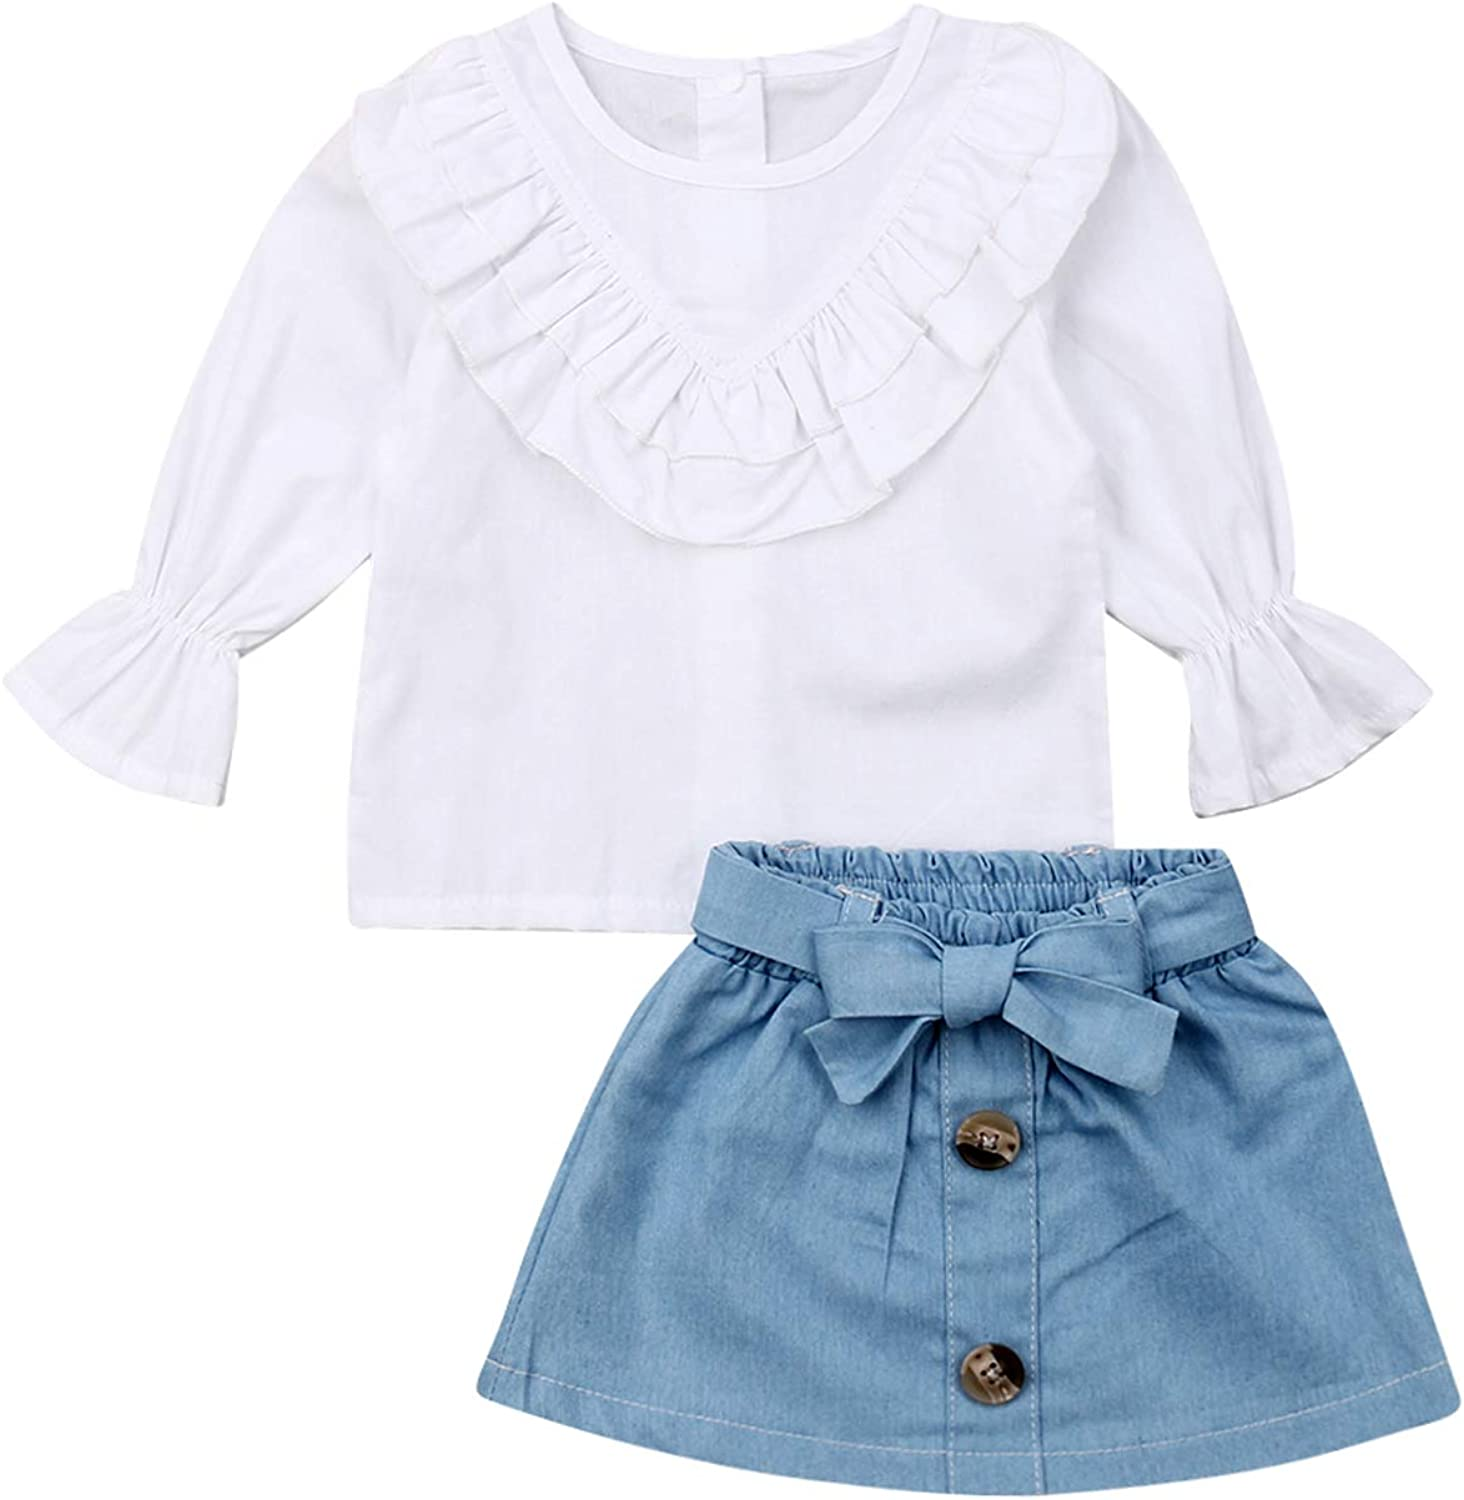 Toddler Baby Kids Girls Formal Casual Outfits Ruffle T Shirt Tops Short Denim Skirts Summer Clothes Sets